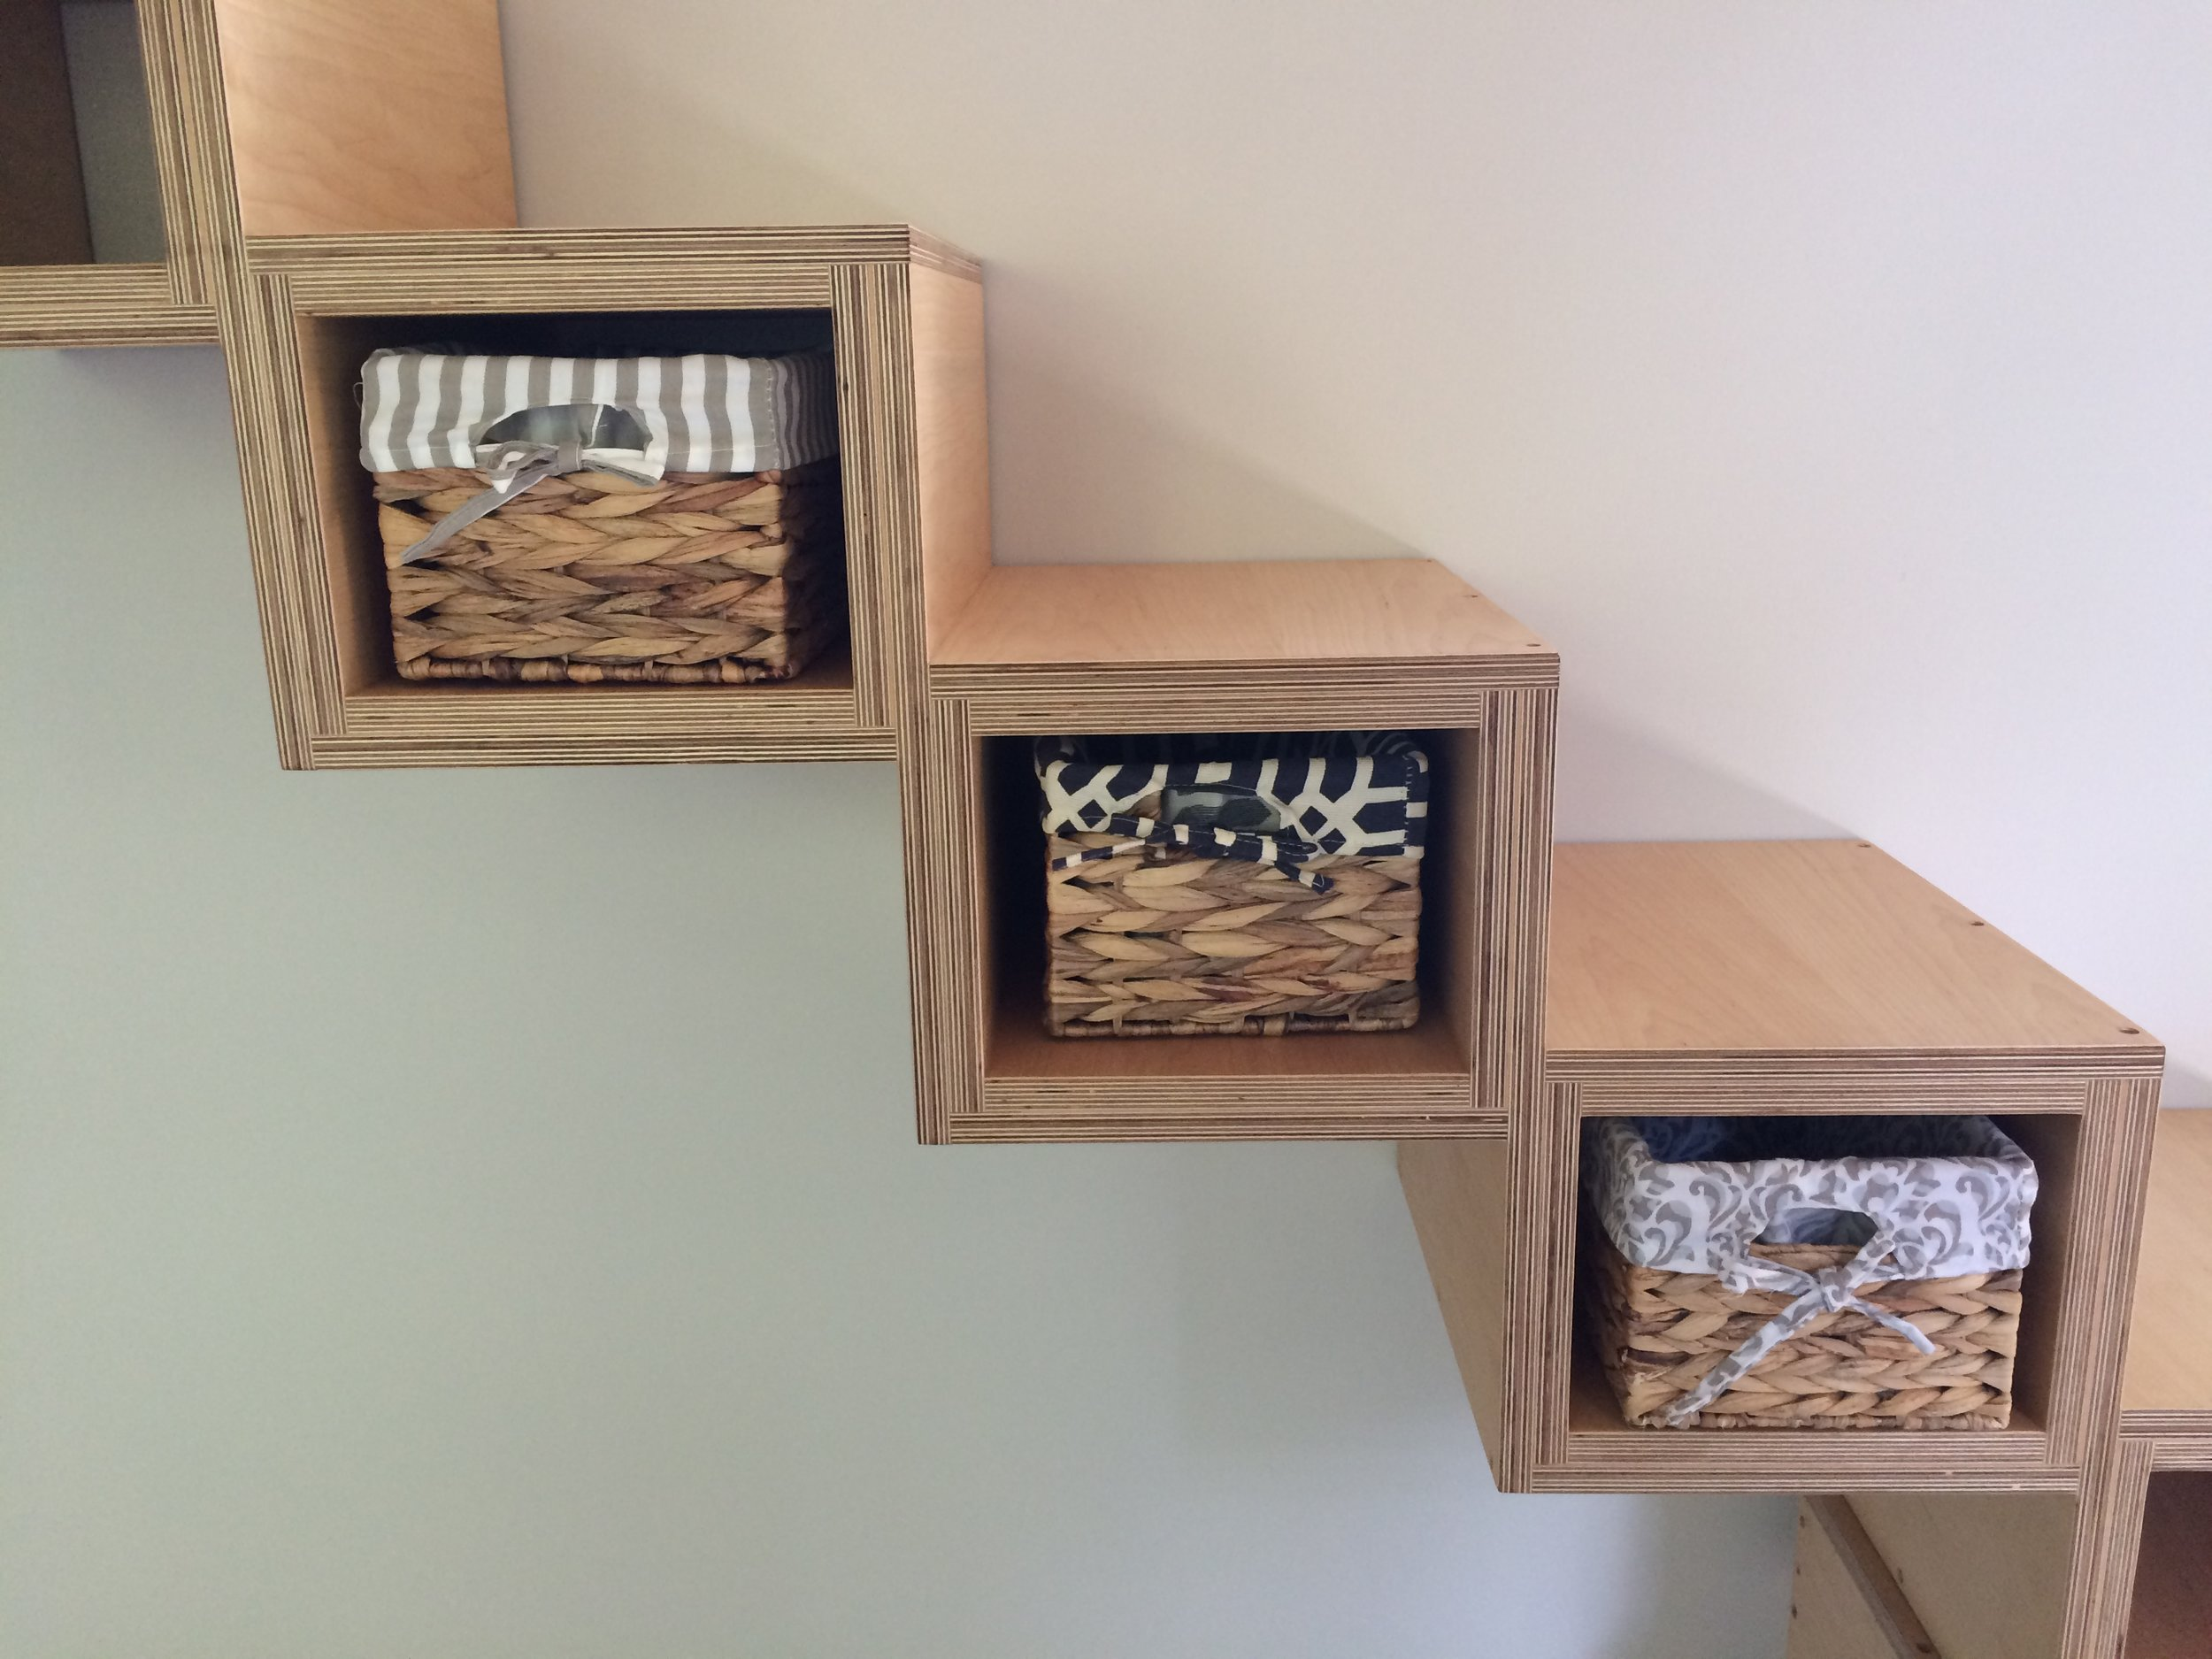 Tiny house stairs - with baskets.